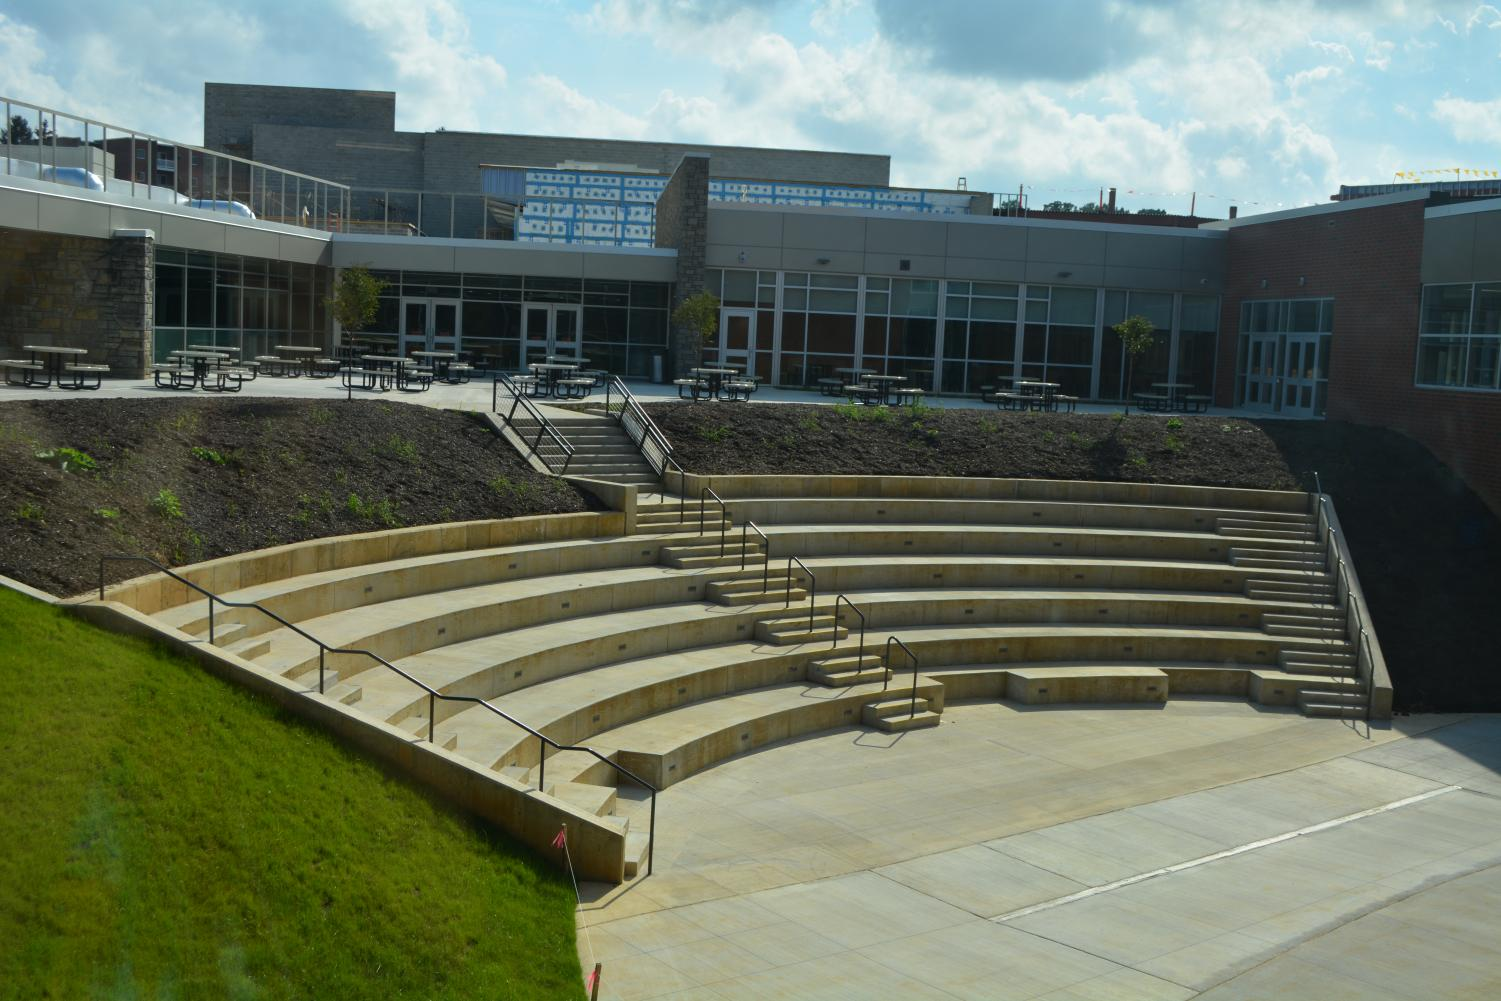 The State High Amphitheater welcomes students to its steps. Recently opened a couple weeks ago, feedback has been generally positive.